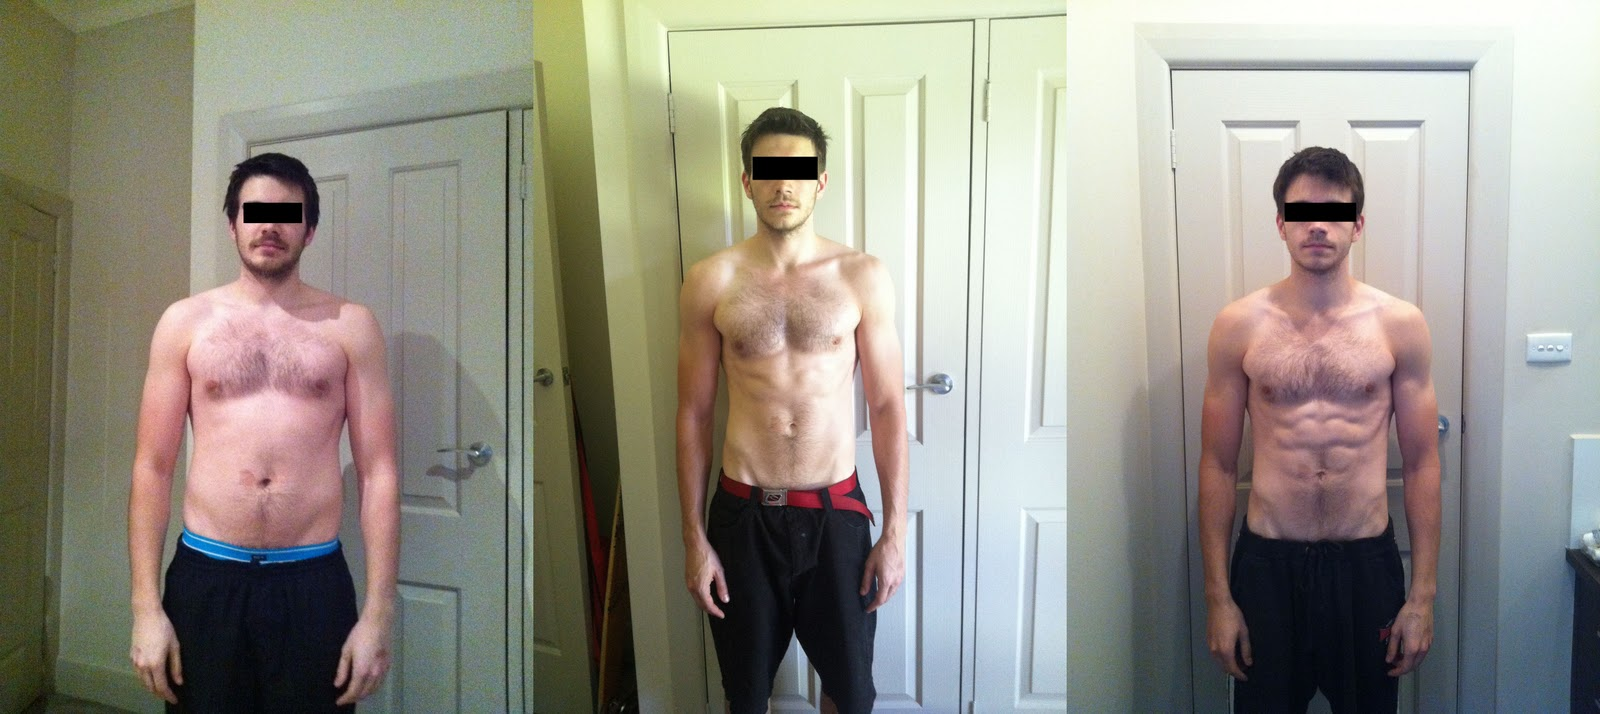 Fat loss 5x5 11 Reasons Why You Need To Lift Heavy For Fat